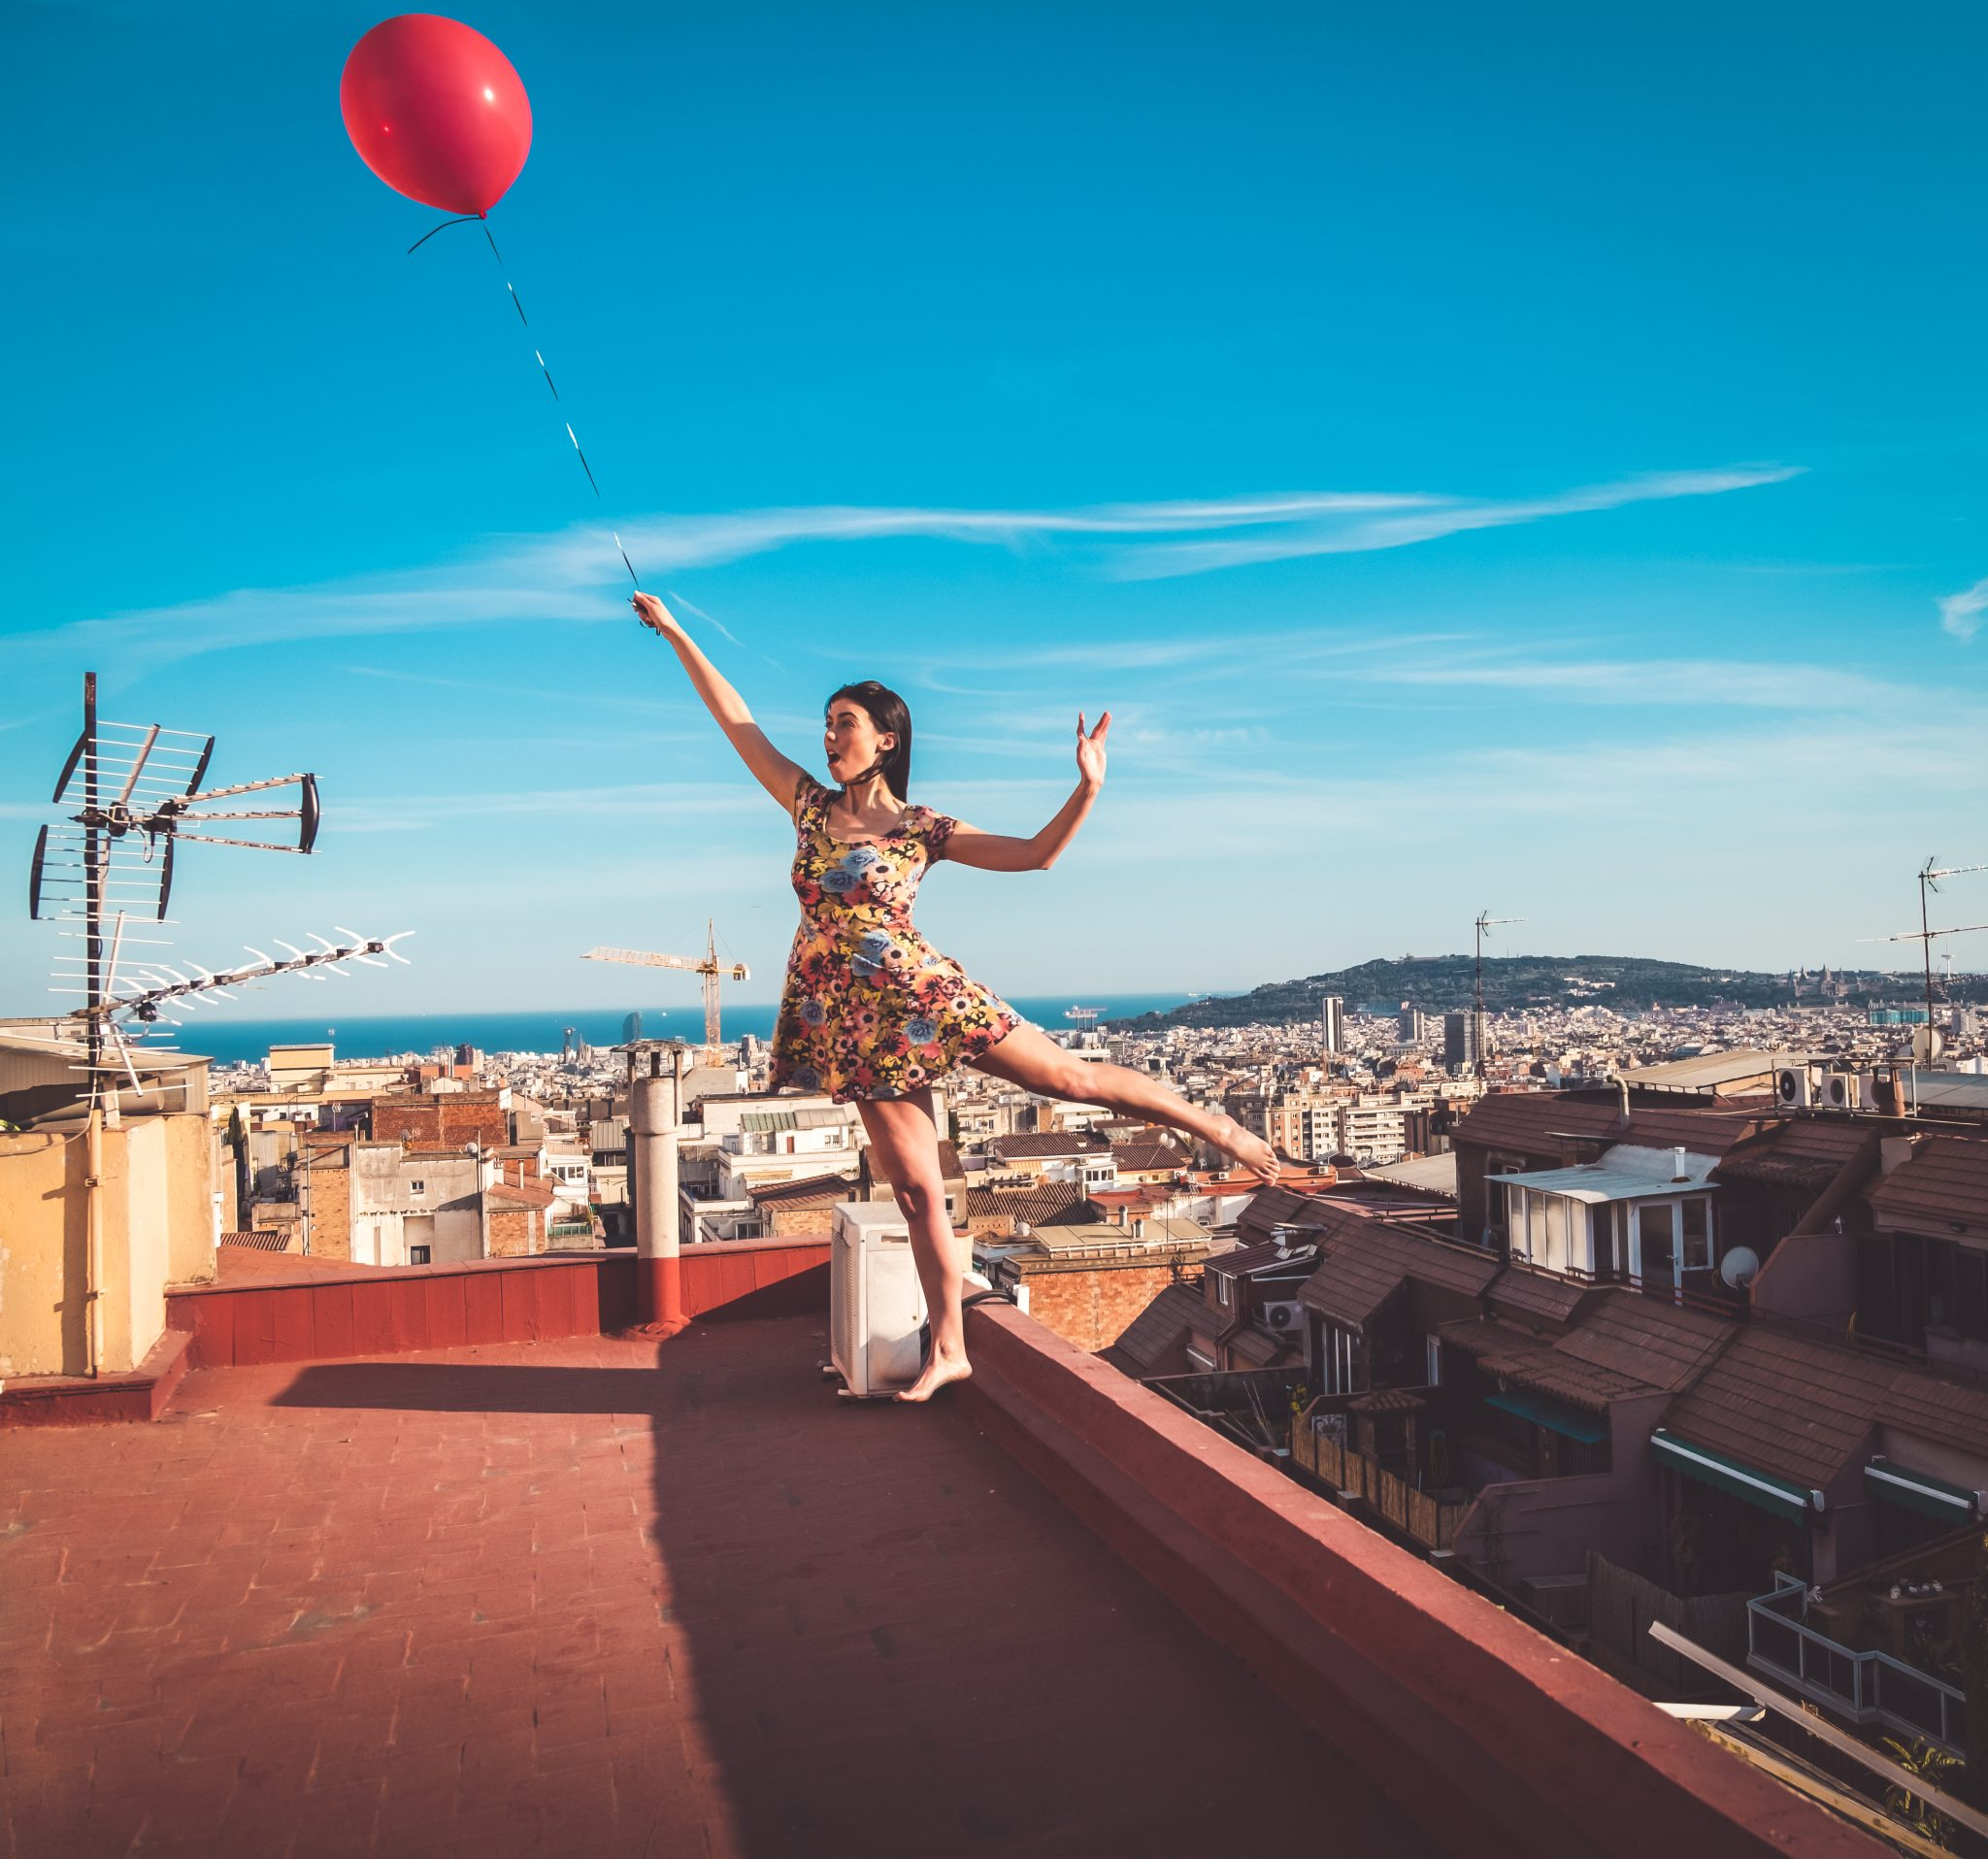 Lemonbahaya model posing for creative levitation with red balloon over barcelona photo by Jo Kassis